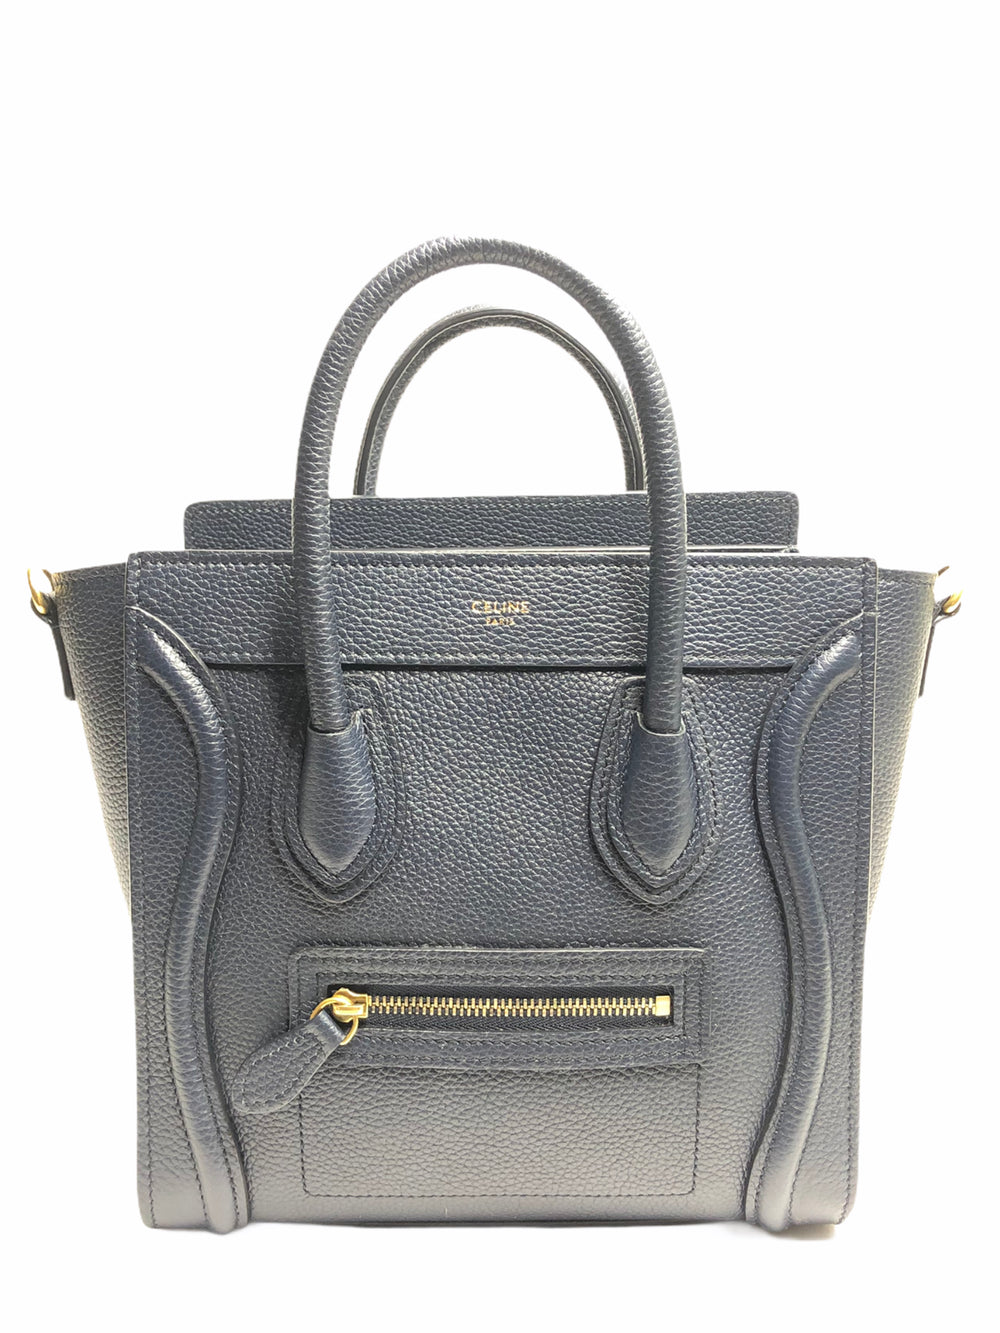 Celine Navy Leather Nano Luggage Crossbody - As Seen on Instagram 29/10/2020